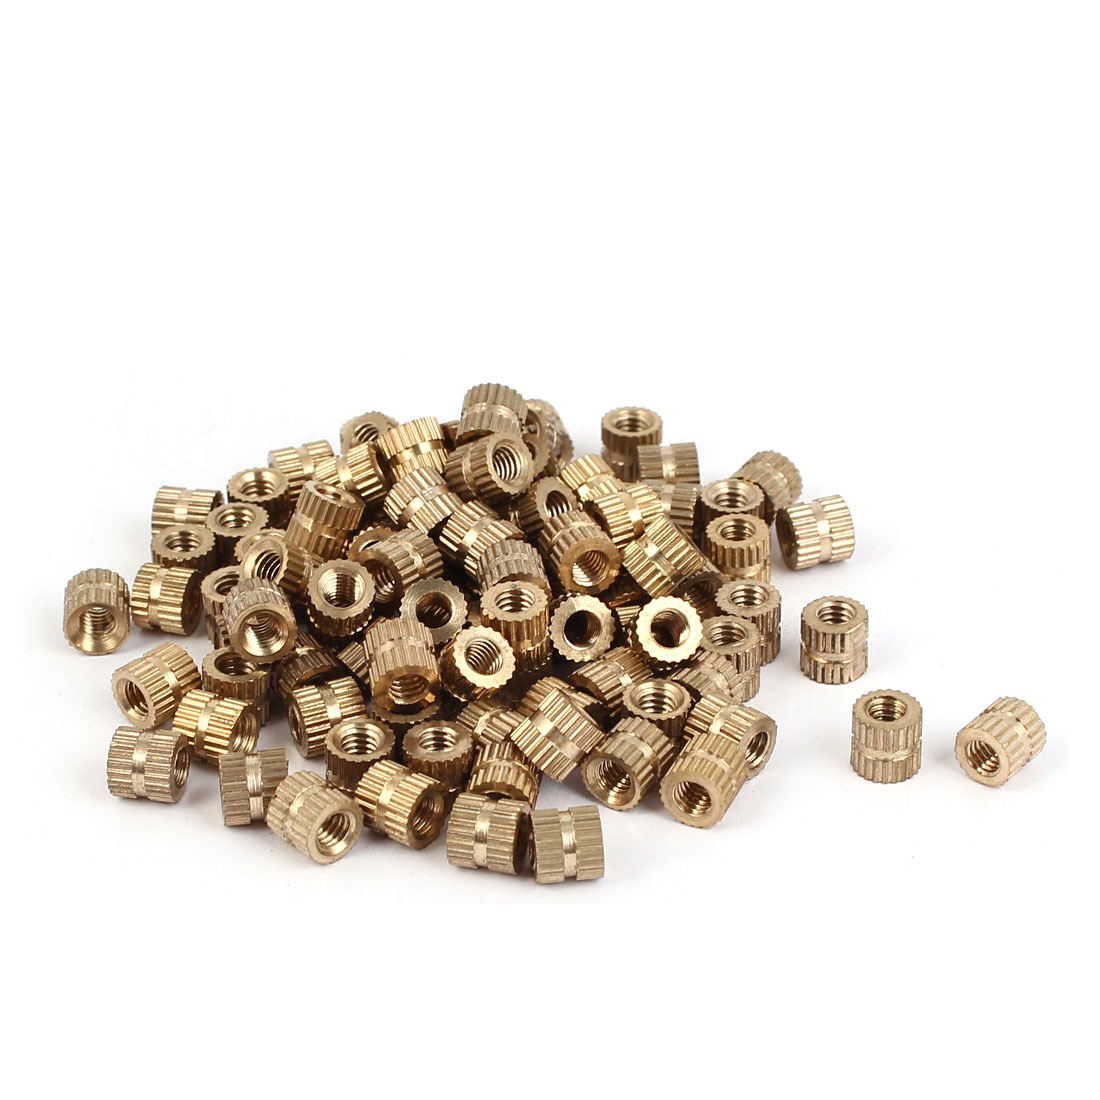 M4 x 6mm Brass Cylinder Injection Molding Knurled Threaded Embedment Nuts 100PCS